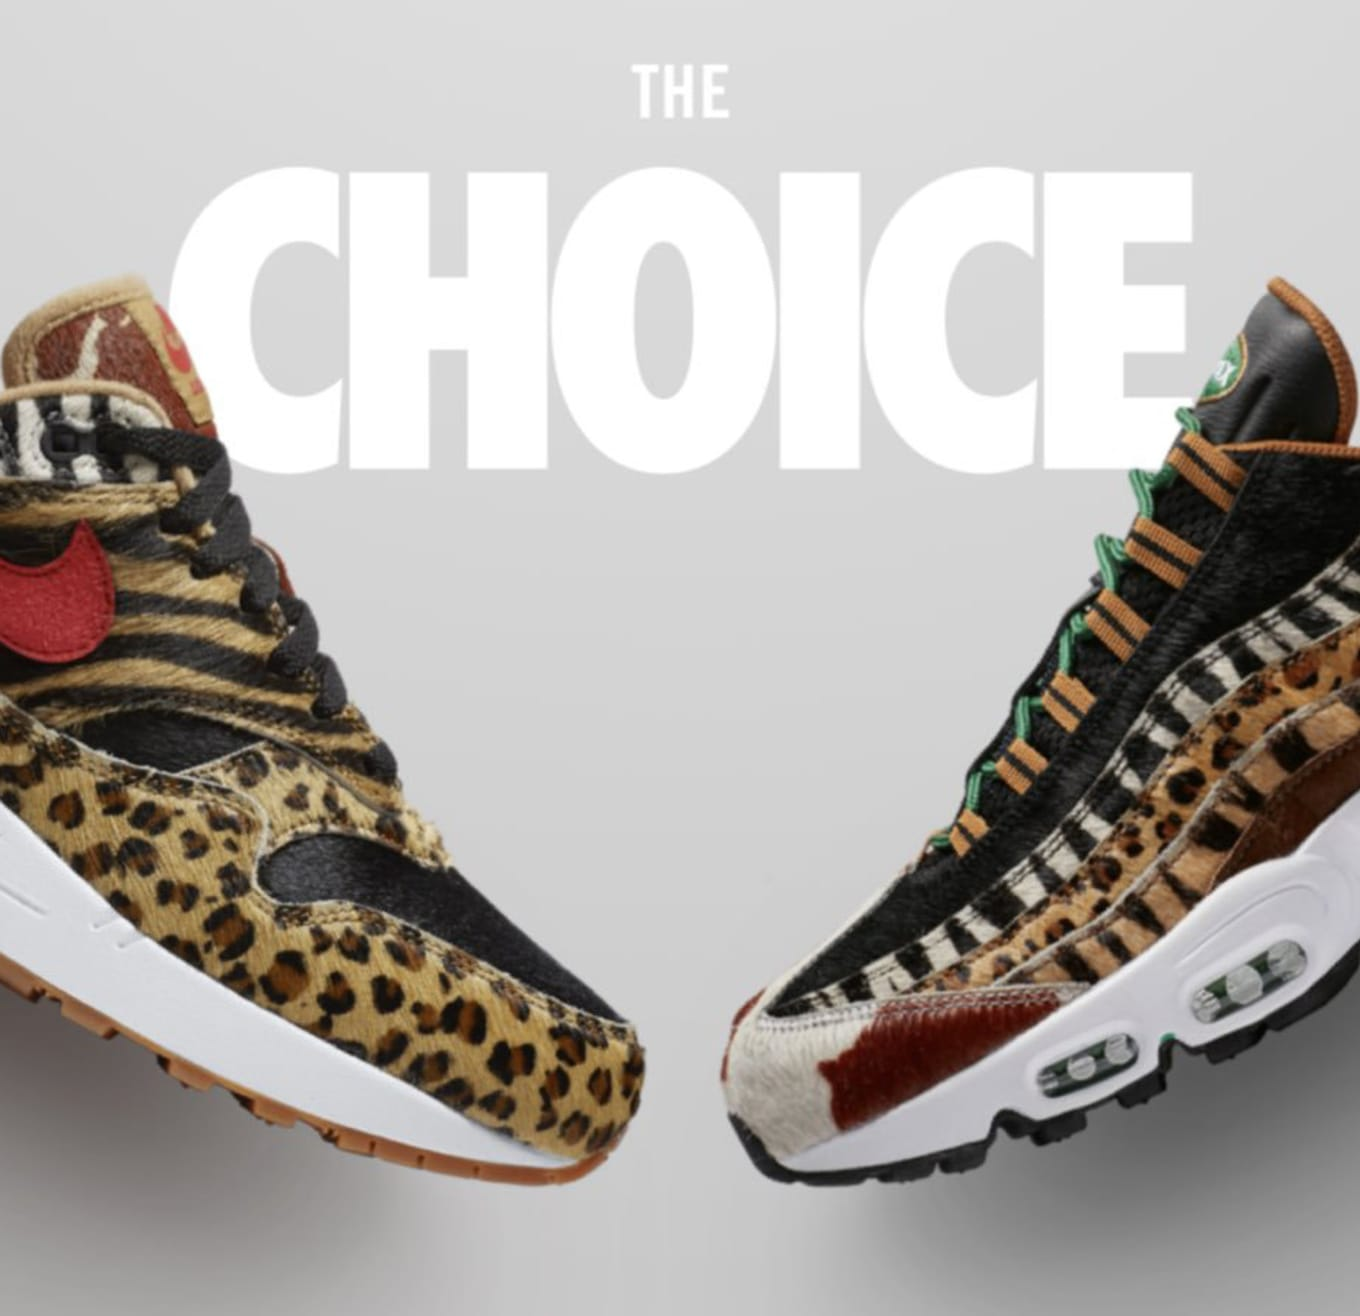 buy popular 15093 f1f3a Nike s Re-Releasing the Atmos Air Max  Animal Pack . Exclusive to  NikeConnect SNKRS users.